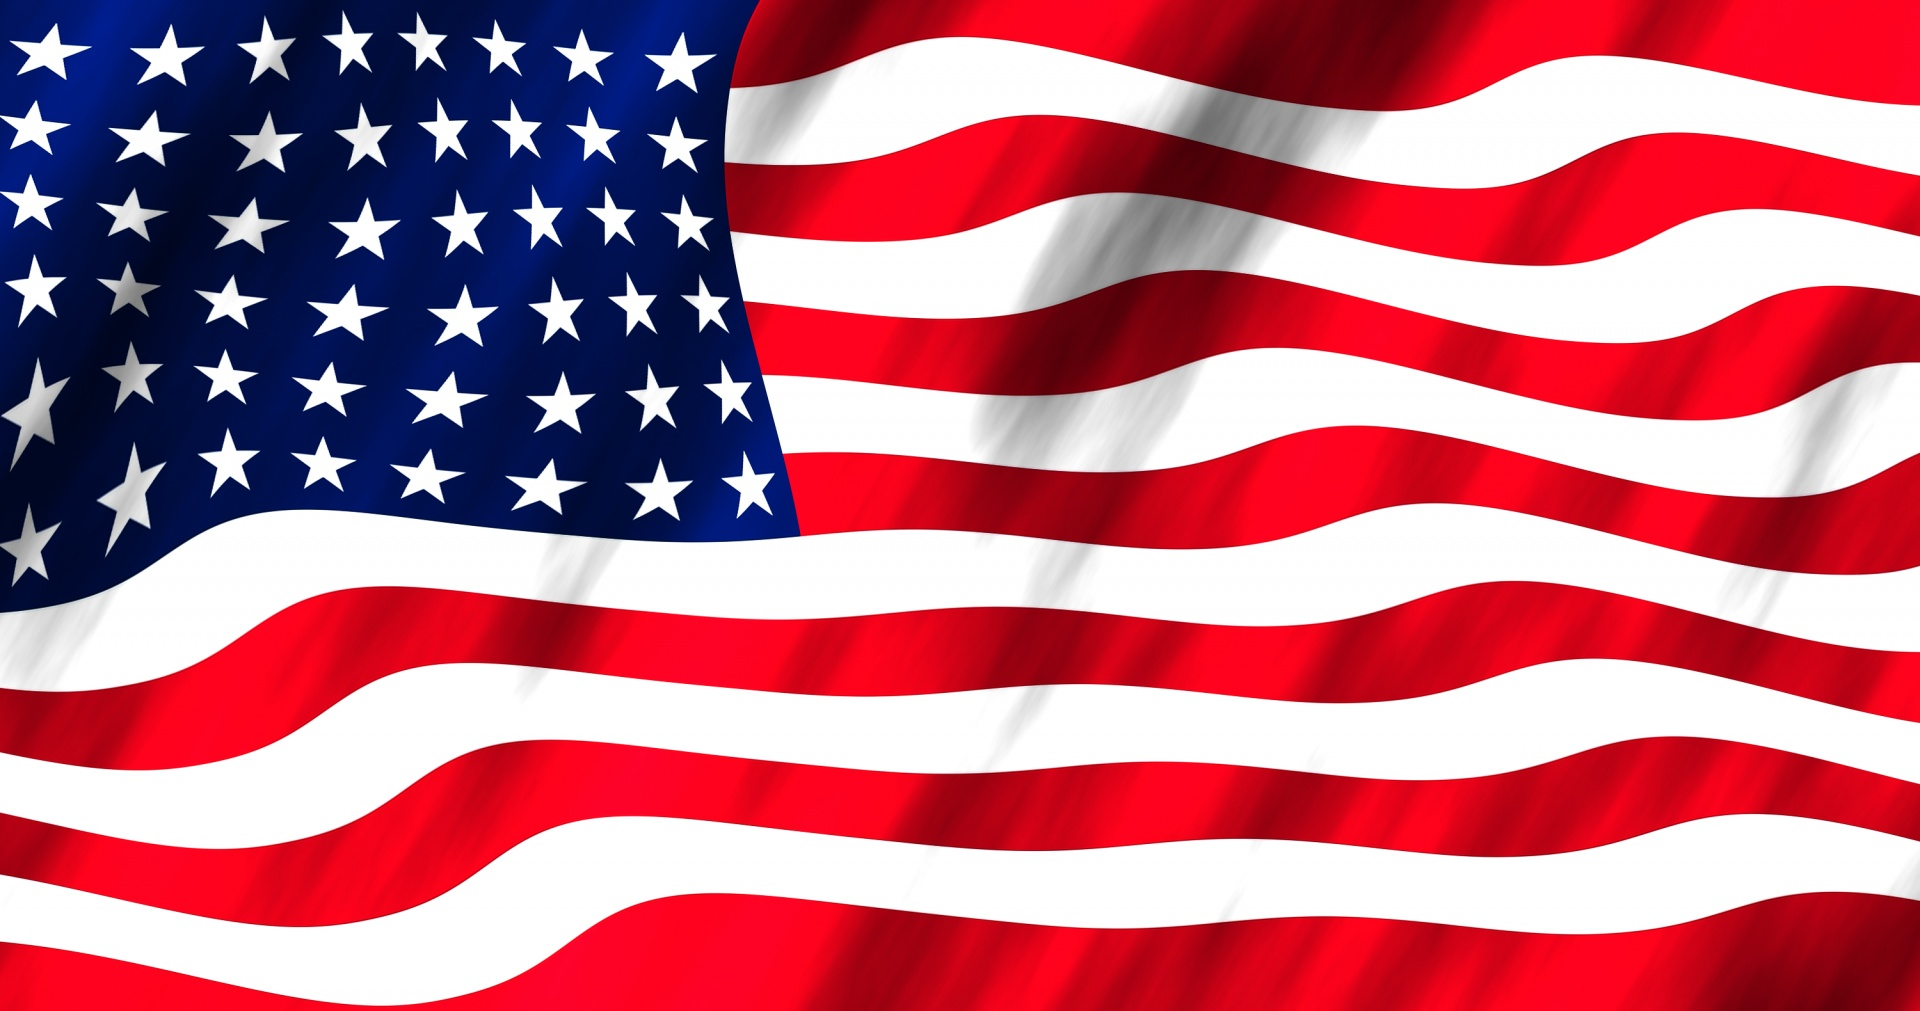 American Flag Images - Public Domain Pictures - Page 1